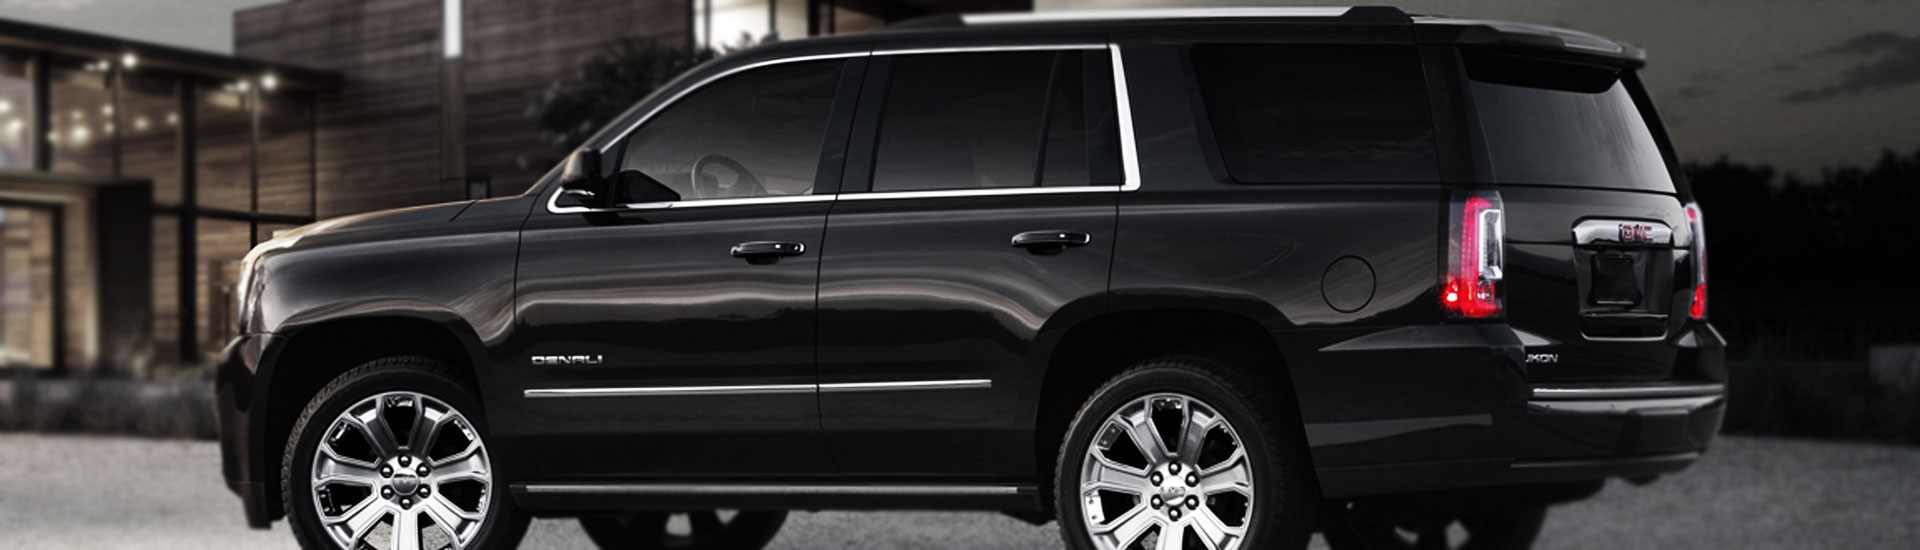 Gmc Yukon Window Tint Kit Diy Precut Gmc Yukon Window Tint